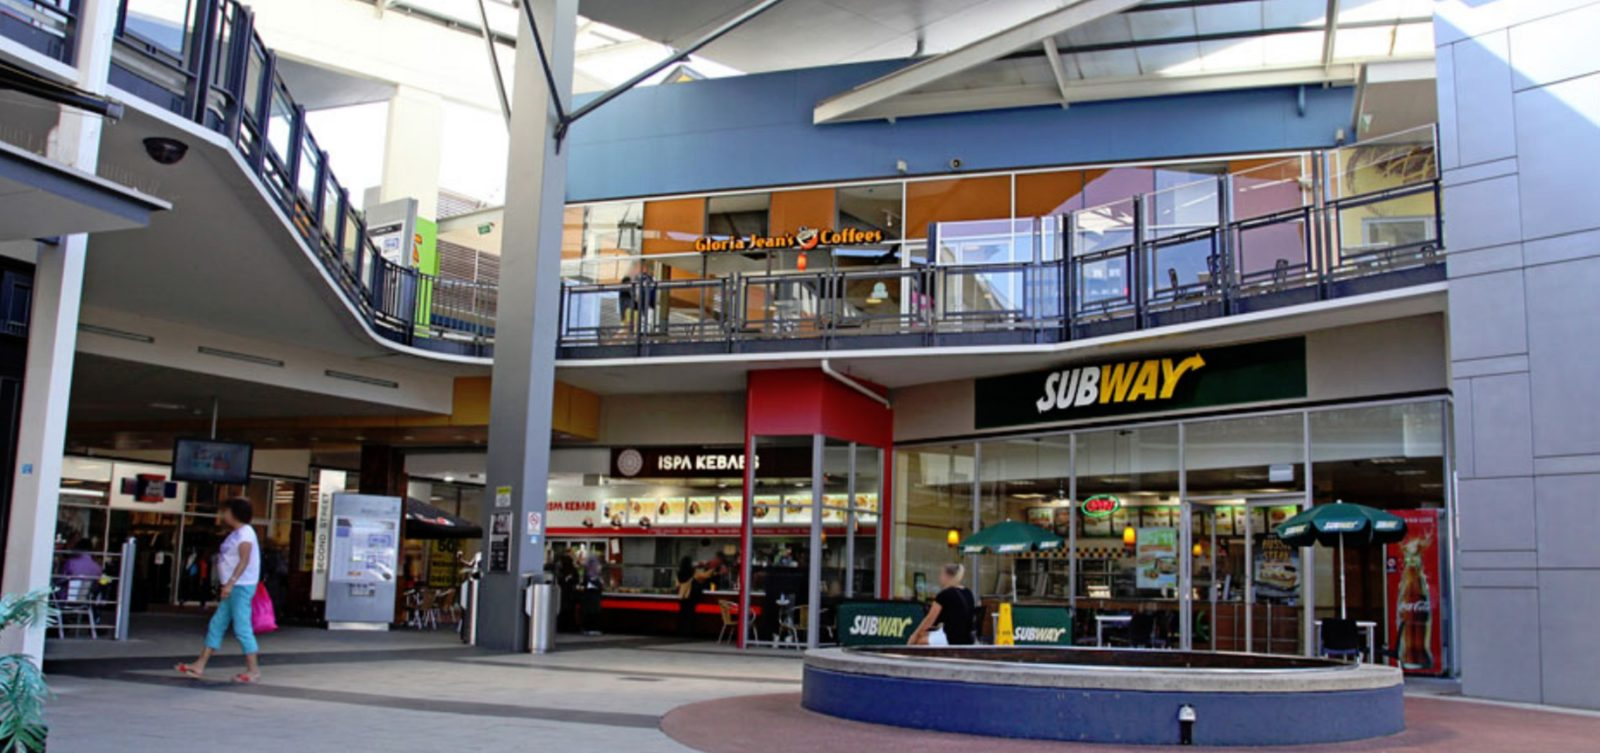 Watertown Brand Outlet, Perth, Western Australia